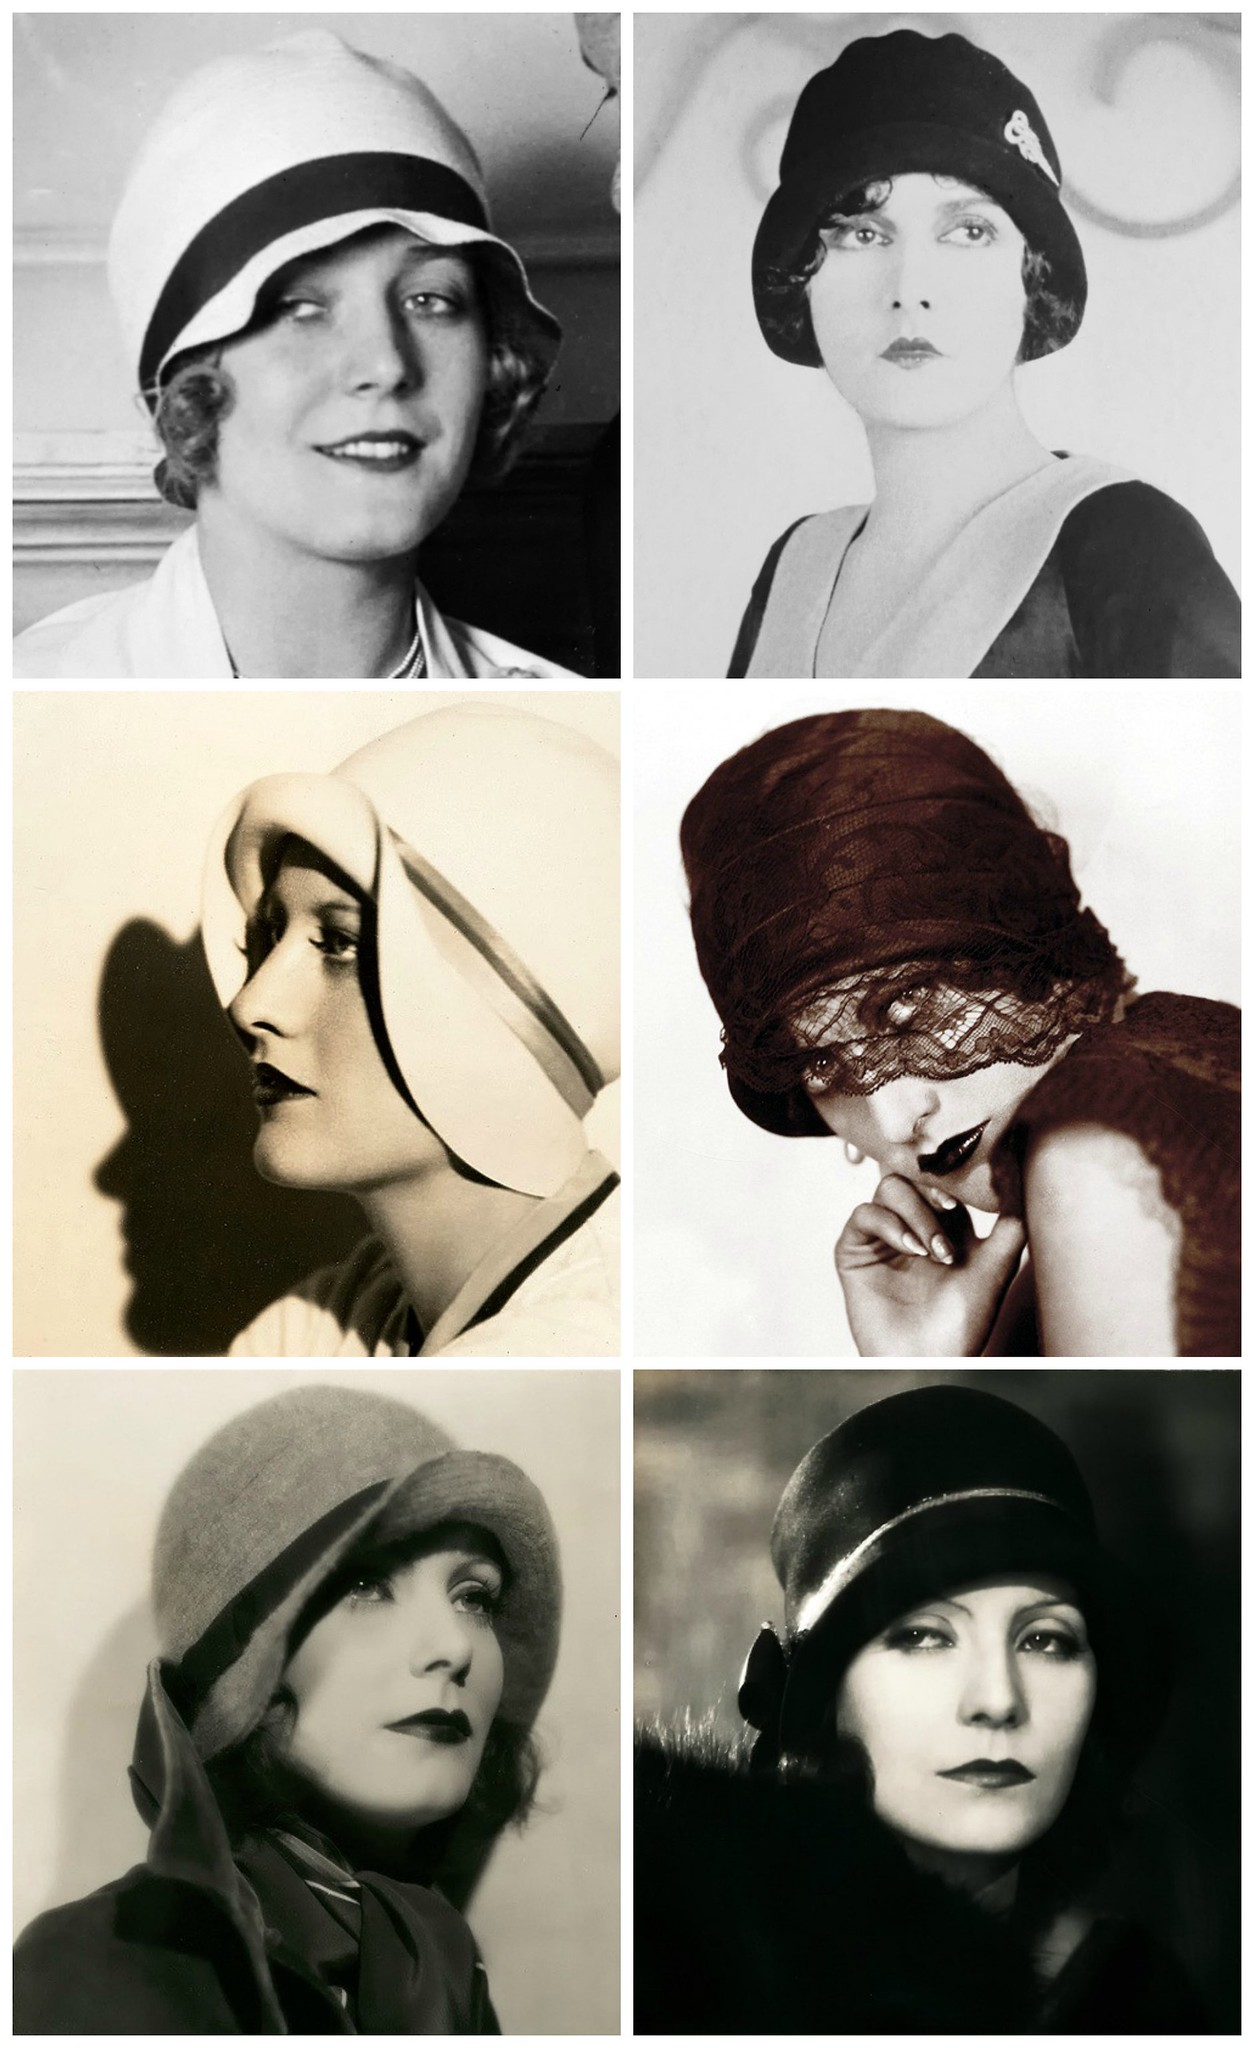 1920s Actresses. Top Row: Vilma Banky, Evelyn Brent; Middle Row: Joan Crawford; Bottom Row: Greta Garbo